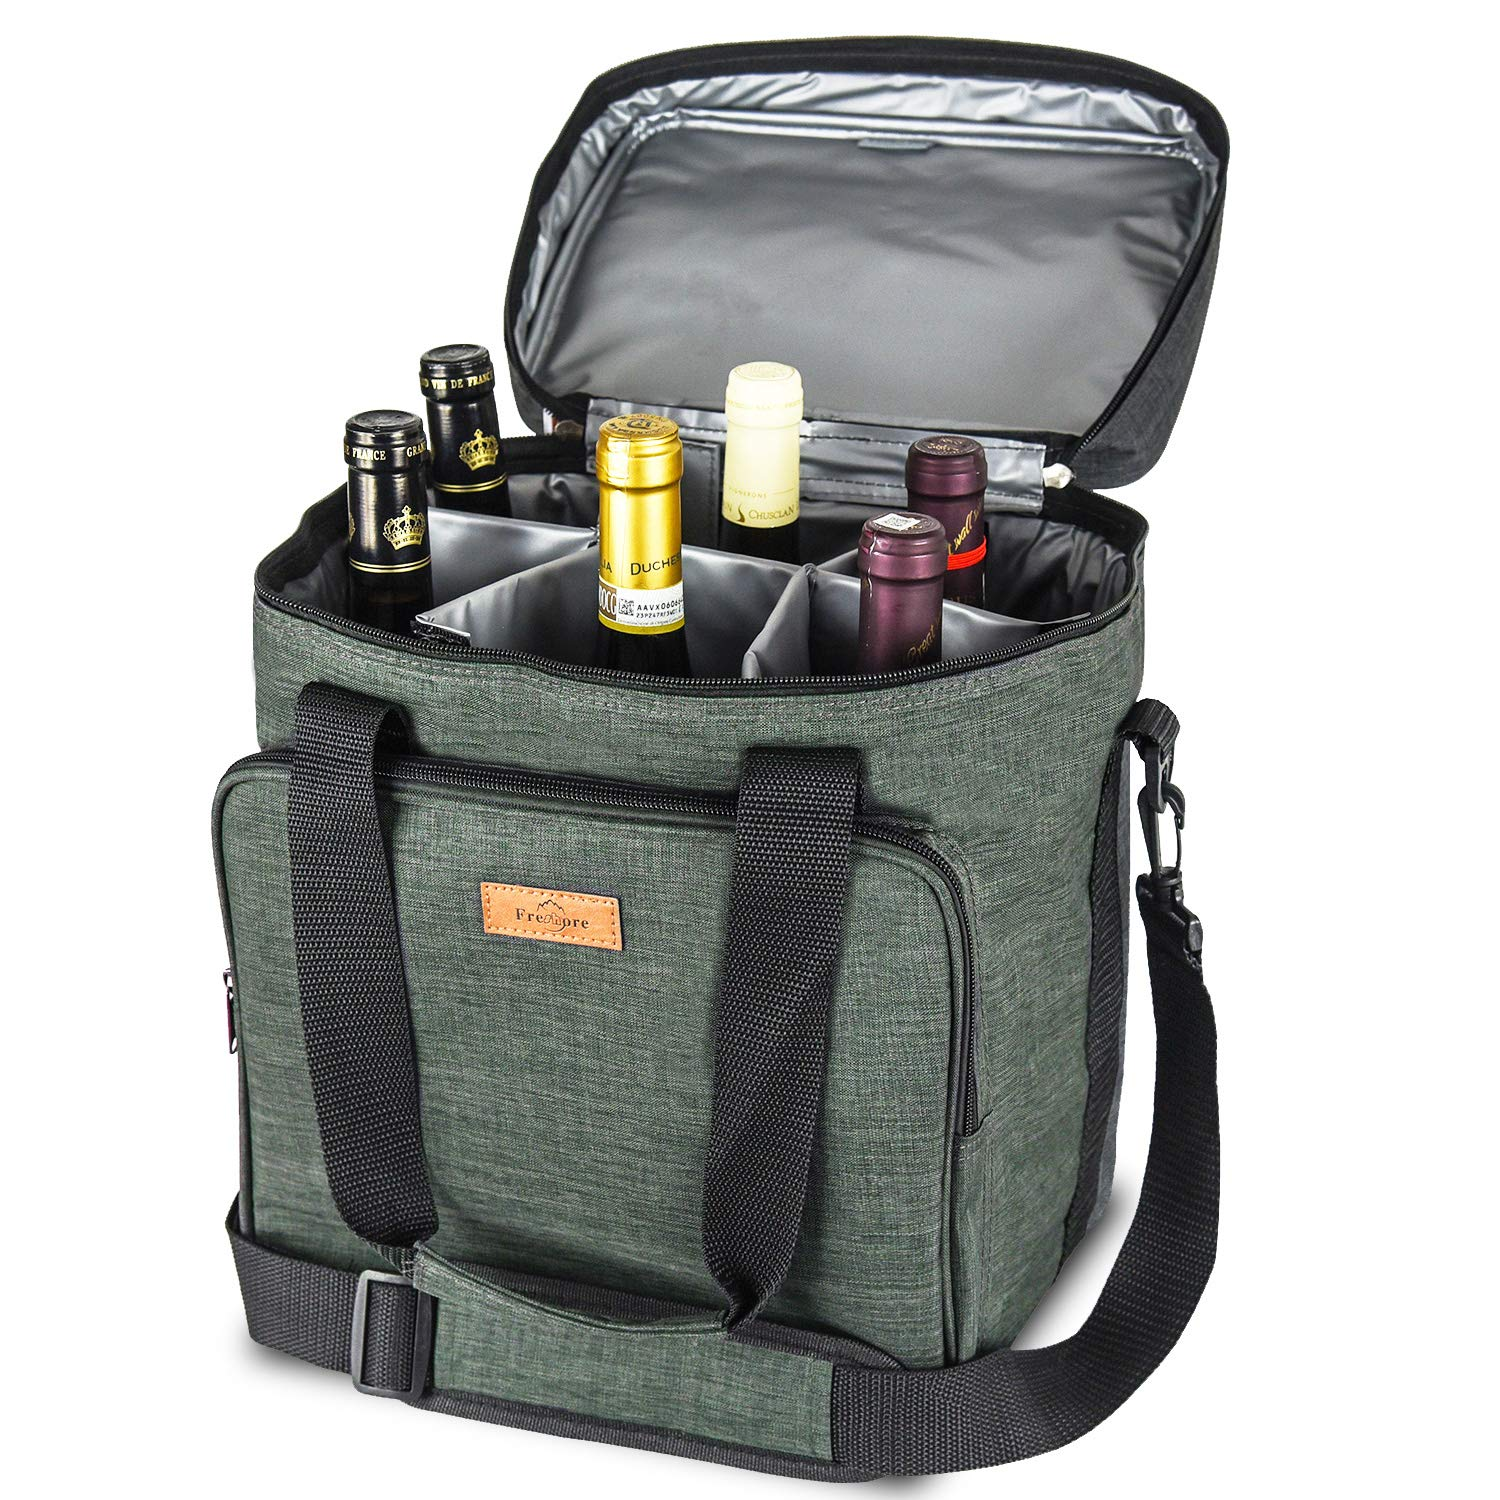 Freshore Insulated Wine Carrier 6 bottle Bag Tote Removable Padded Divider - Portable Travel Padded Cooler Carrying Canvas Case Adjustable Shoulder Strap - (Dark Green) by Freshore (Image #1)